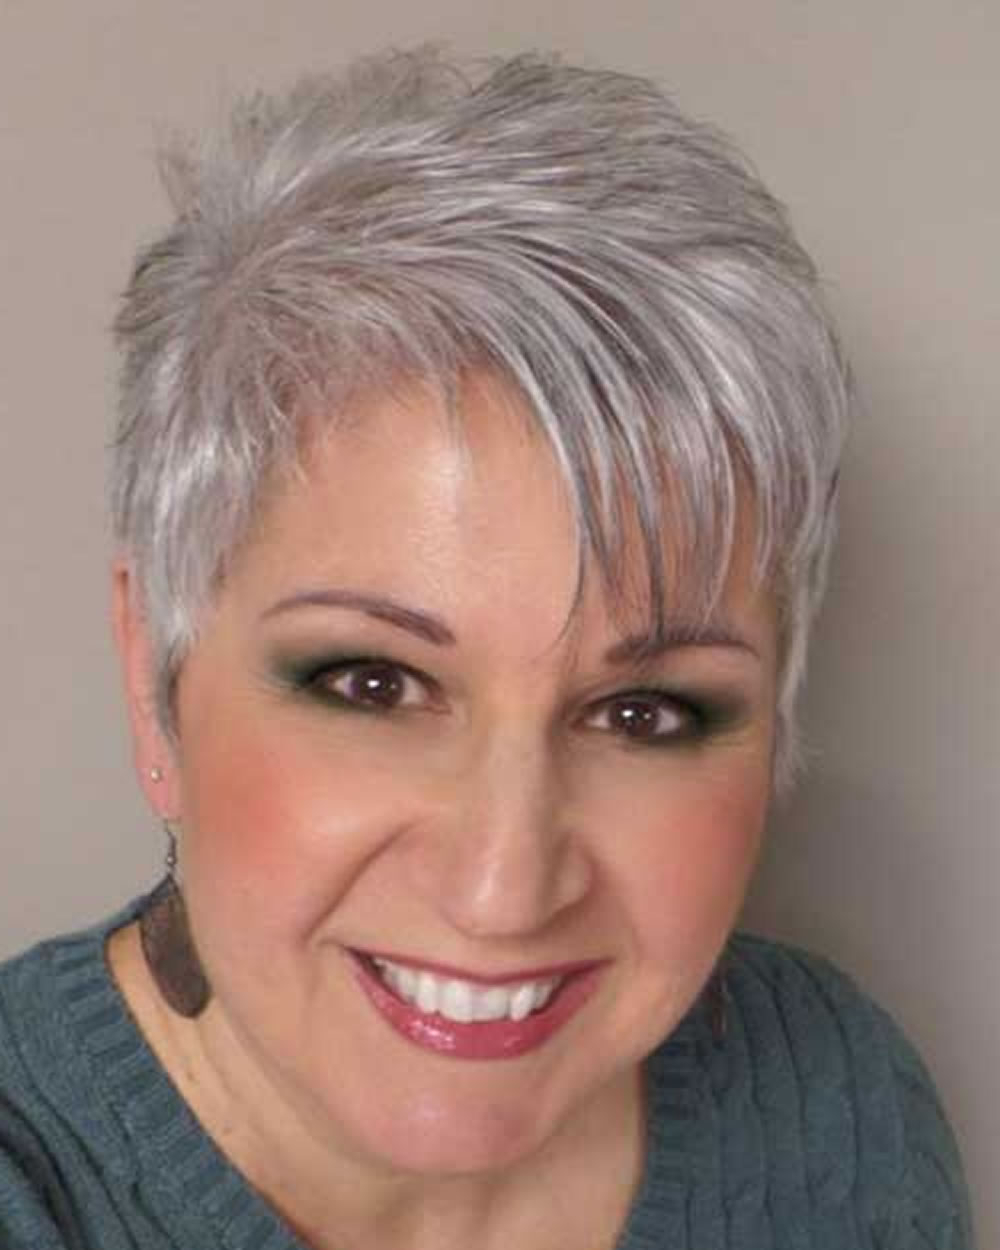 Pixie Short Haircuts For Older Women Over 50 & 2018 2019 Short Within Pixie Undercut Hairstyles For Women Over (View 10 of 20)